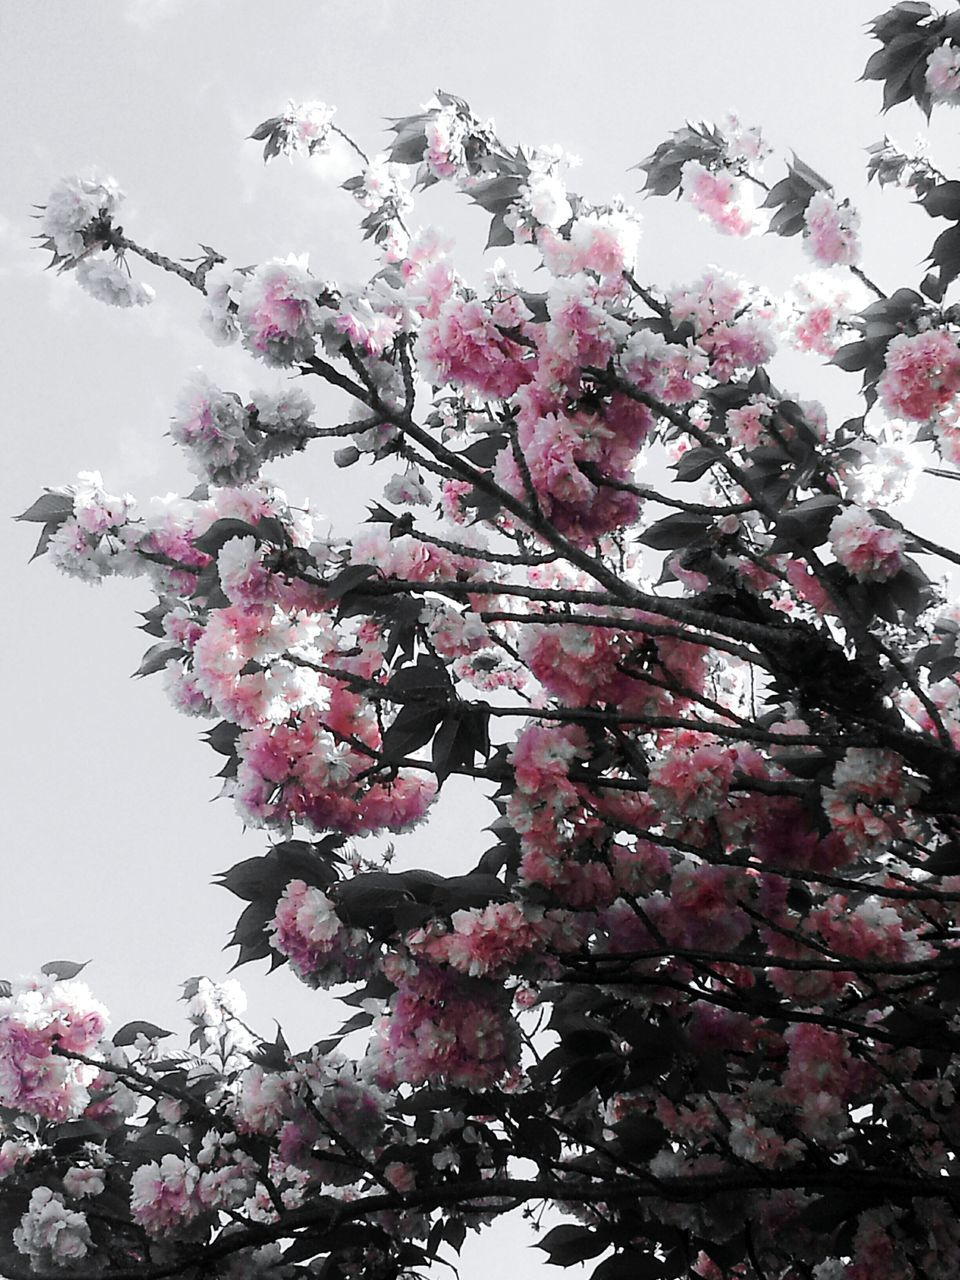 flower, tree, blossom, growth, fragility, nature, beauty in nature, low angle view, springtime, botany, freshness, branch, pink color, no people, magnolia, day, petal, outdoors, clear sky, blooming, sky, close-up, flower head